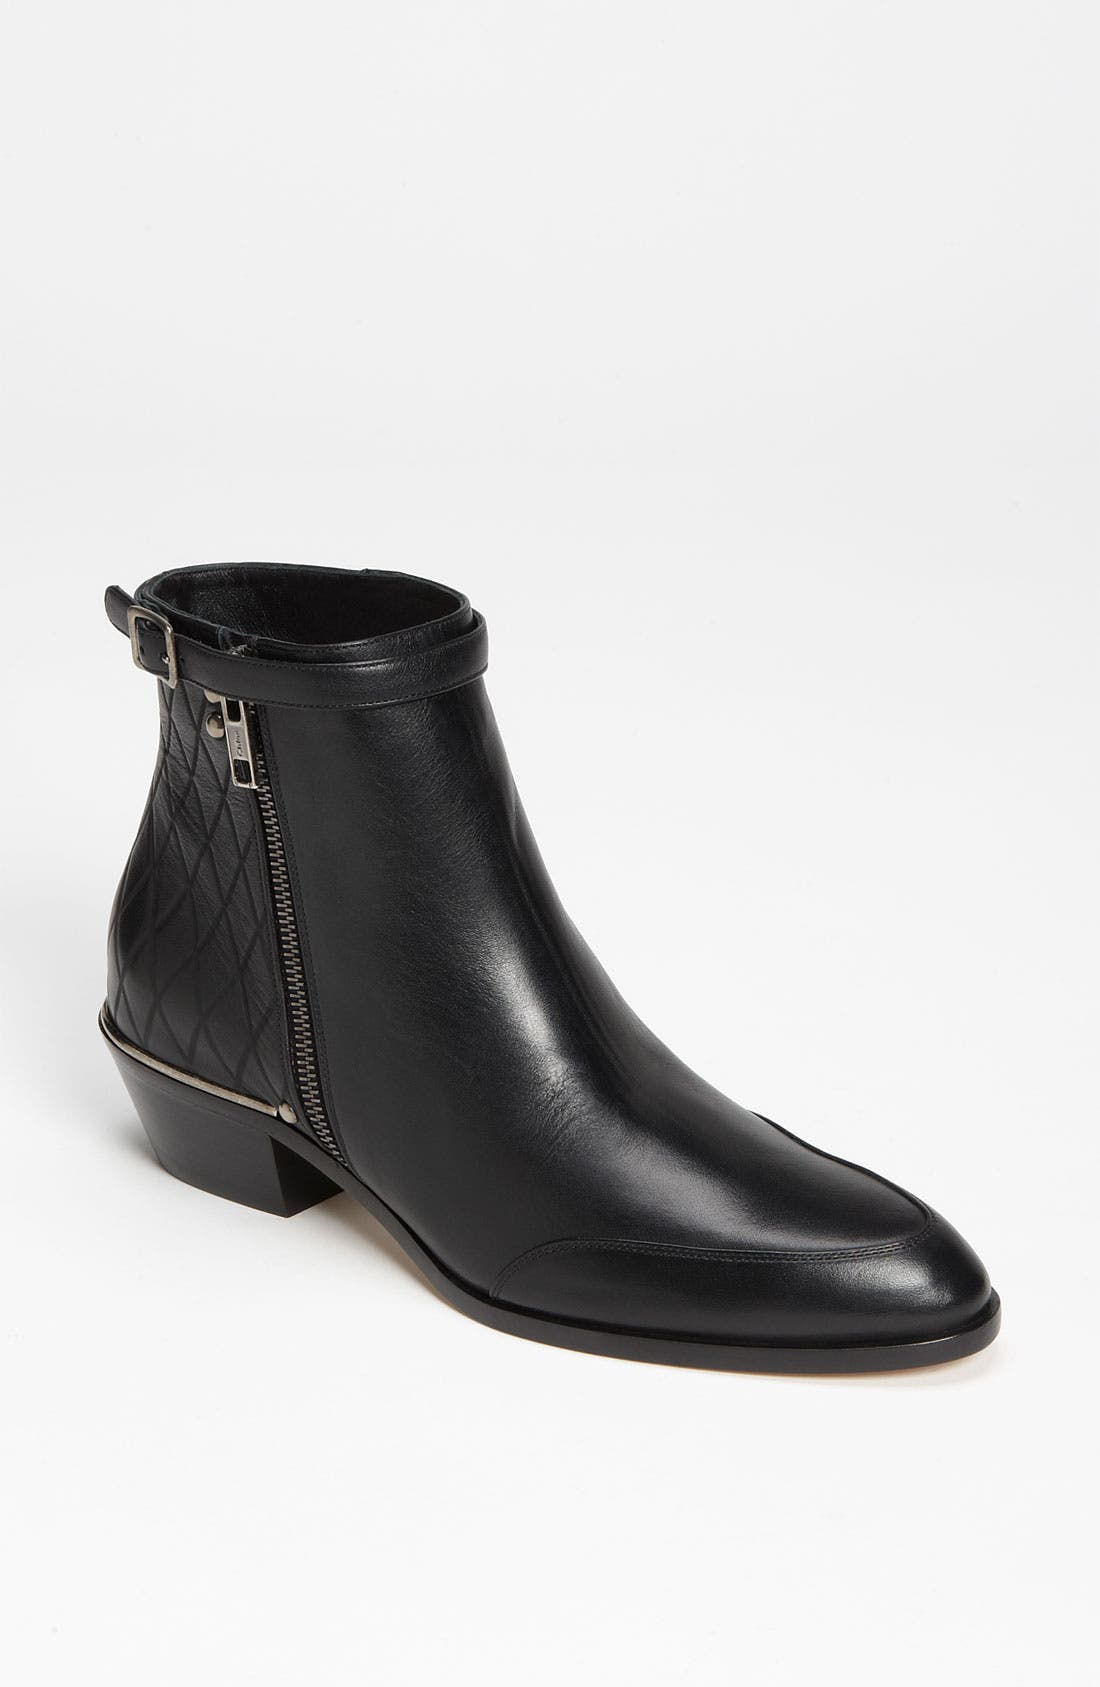 Alternate Image 1 Selected - Chloé Side Zip Bootie